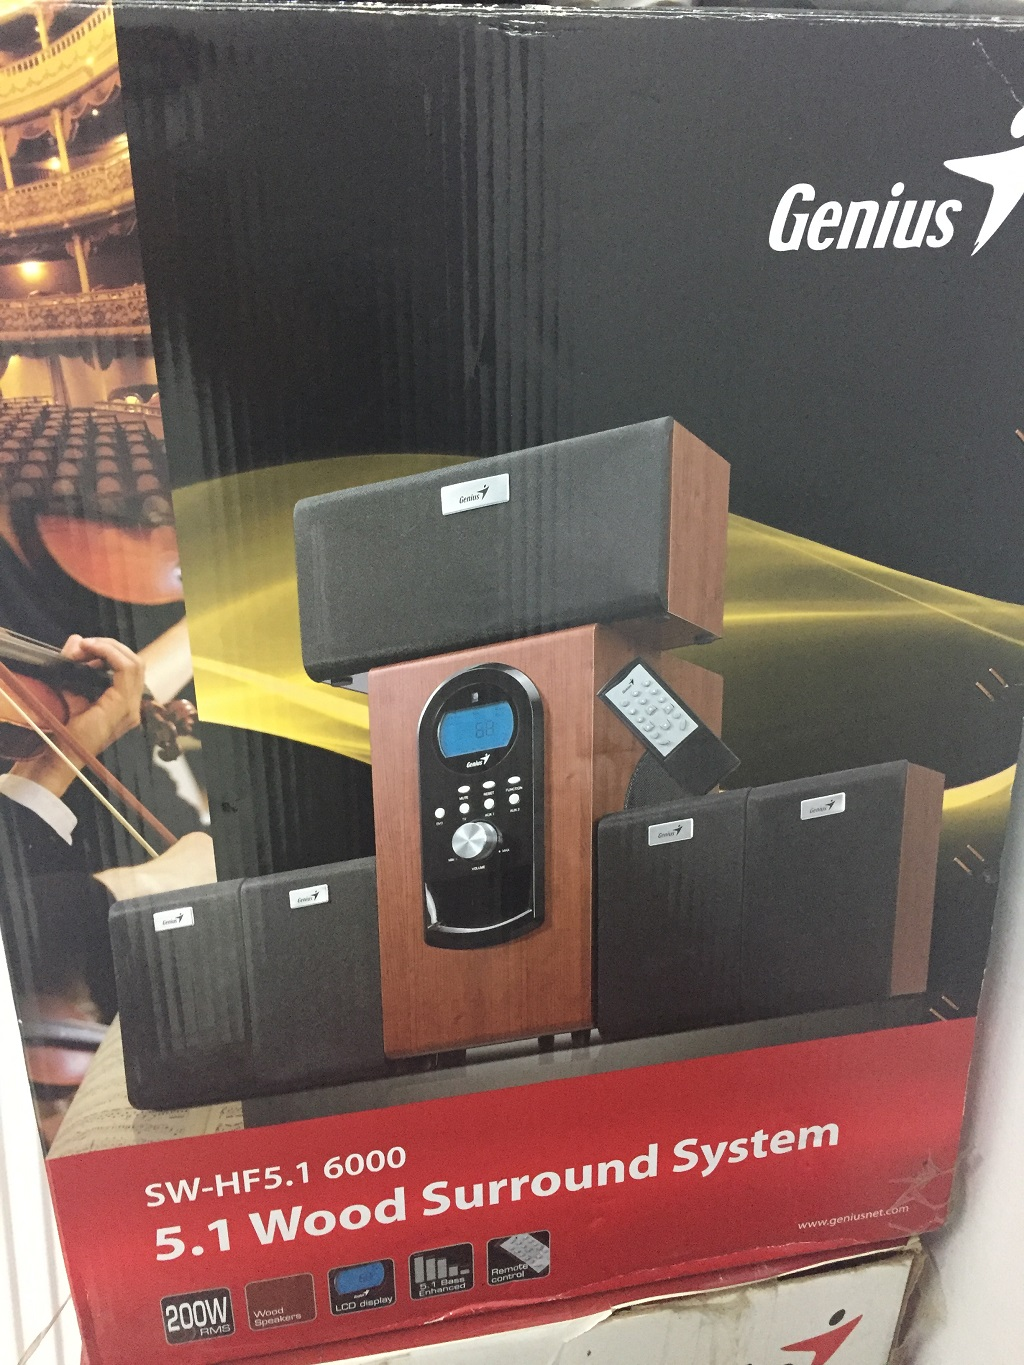 SISTEM AUDIO GENIUS